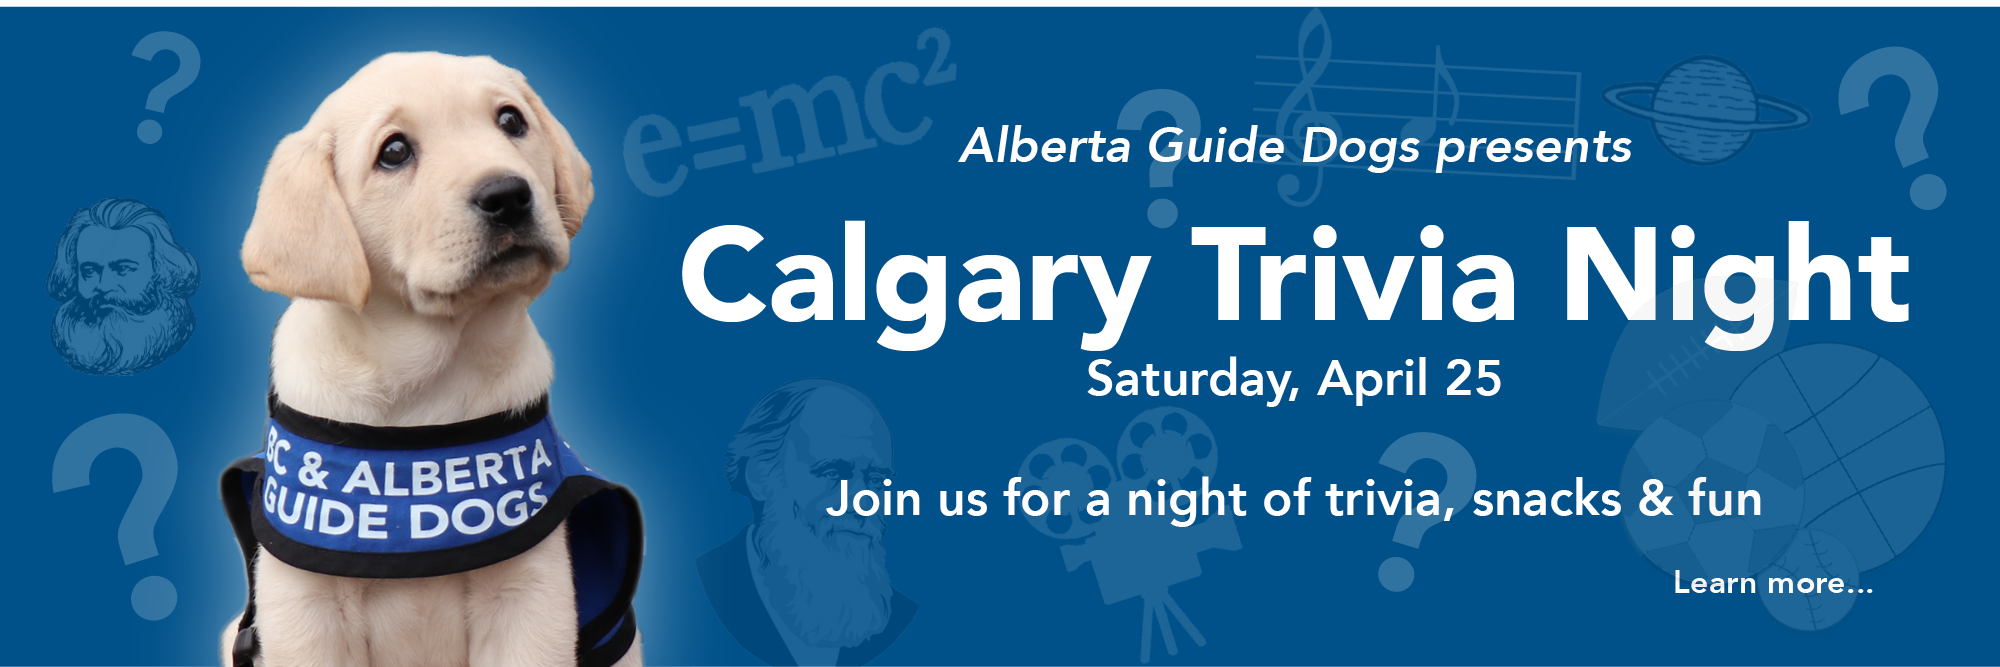 IMPORTANT UPDATE regarding the Calgary Trivia Night